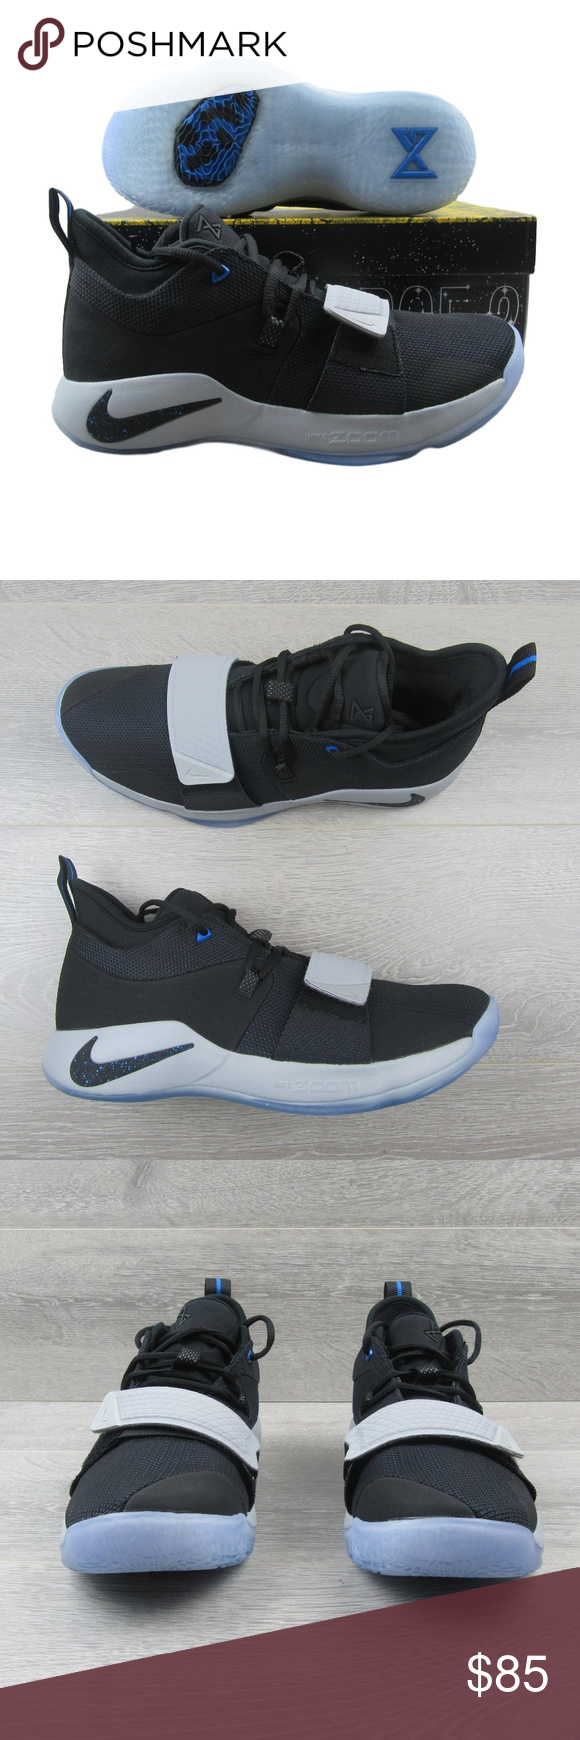 best service 2dec7 1b3c0 Nike PG 2.5 Black Photo Blue Basketball Shoes PRICE IS FIRM ...